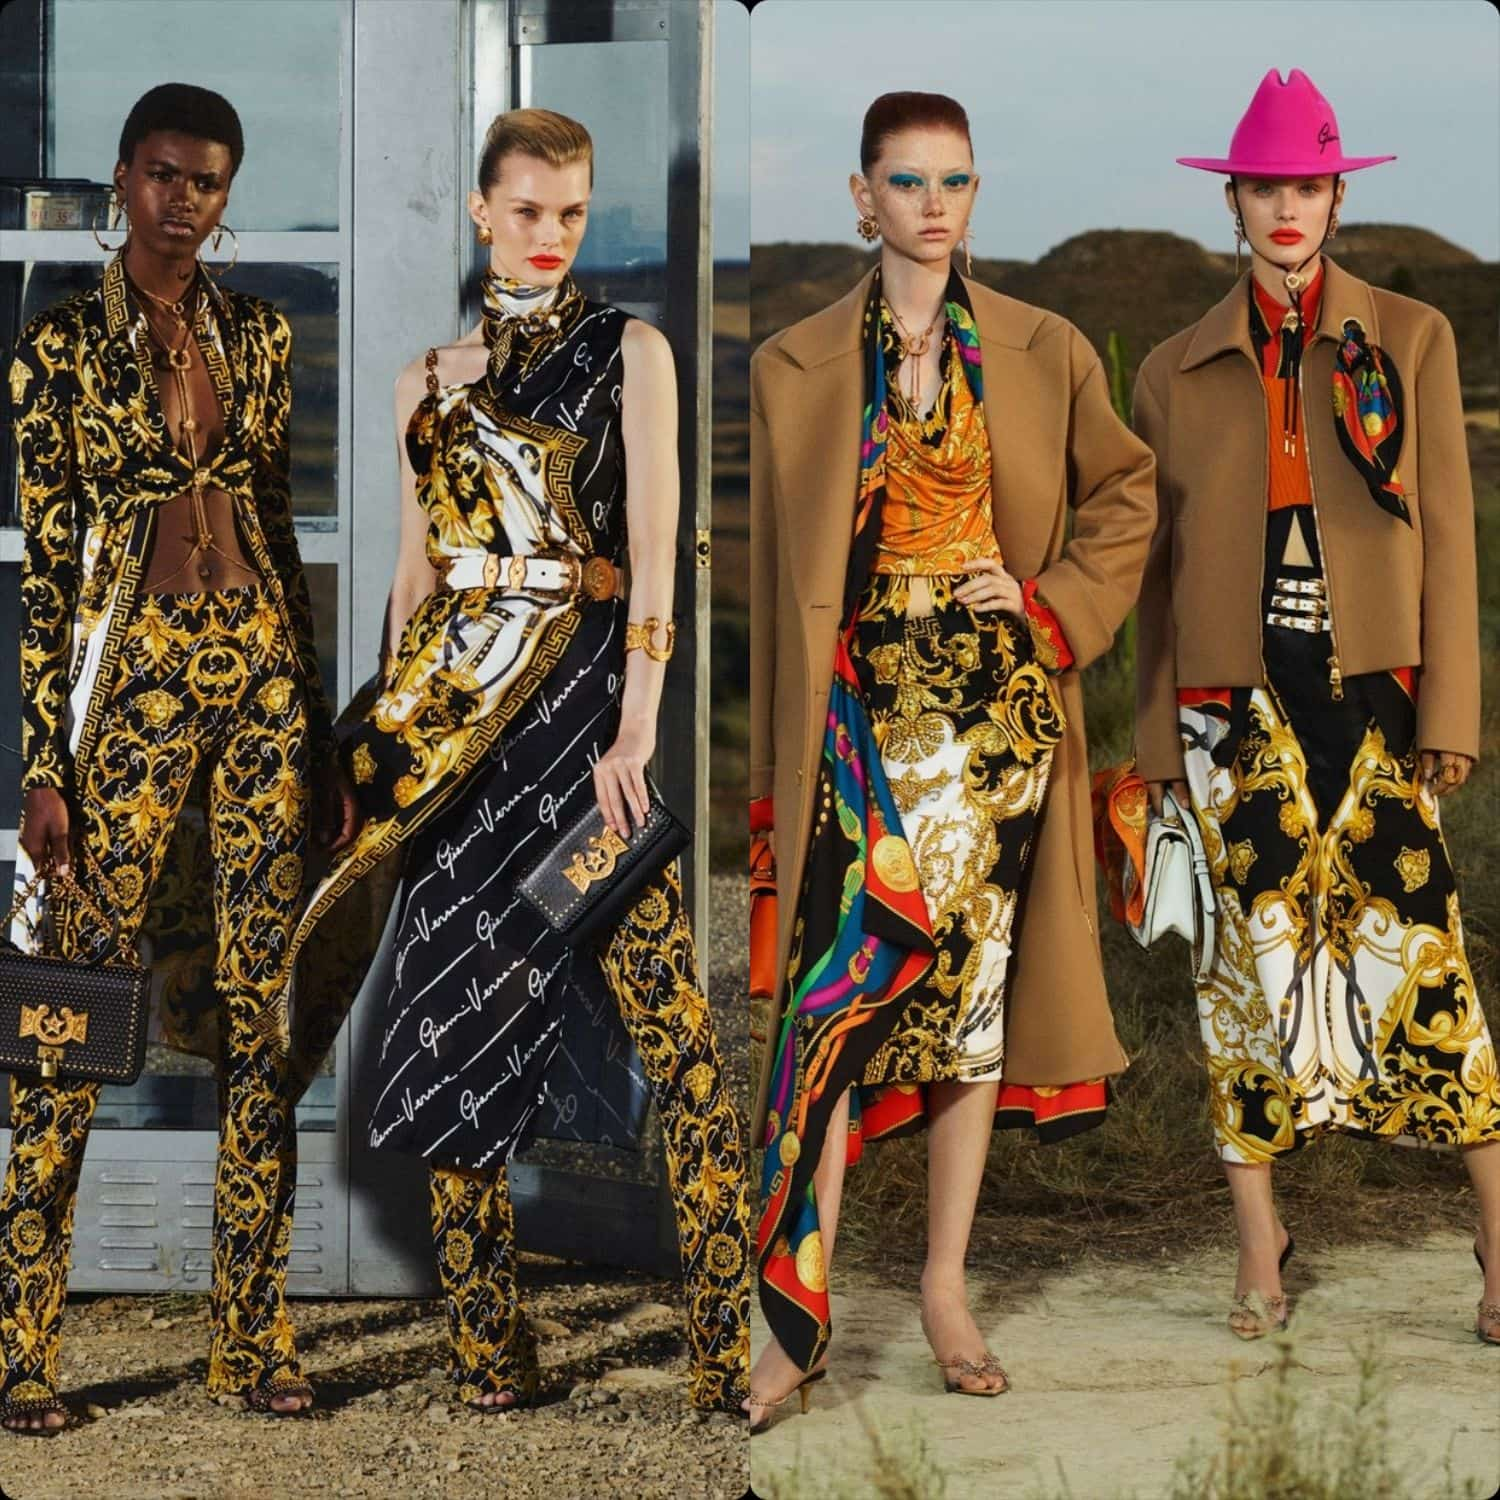 Versace Cruise 2020 Milan. RUNWAY MAGAZINE ® Collections. RUNWAY NOW / RUNWAY NEW